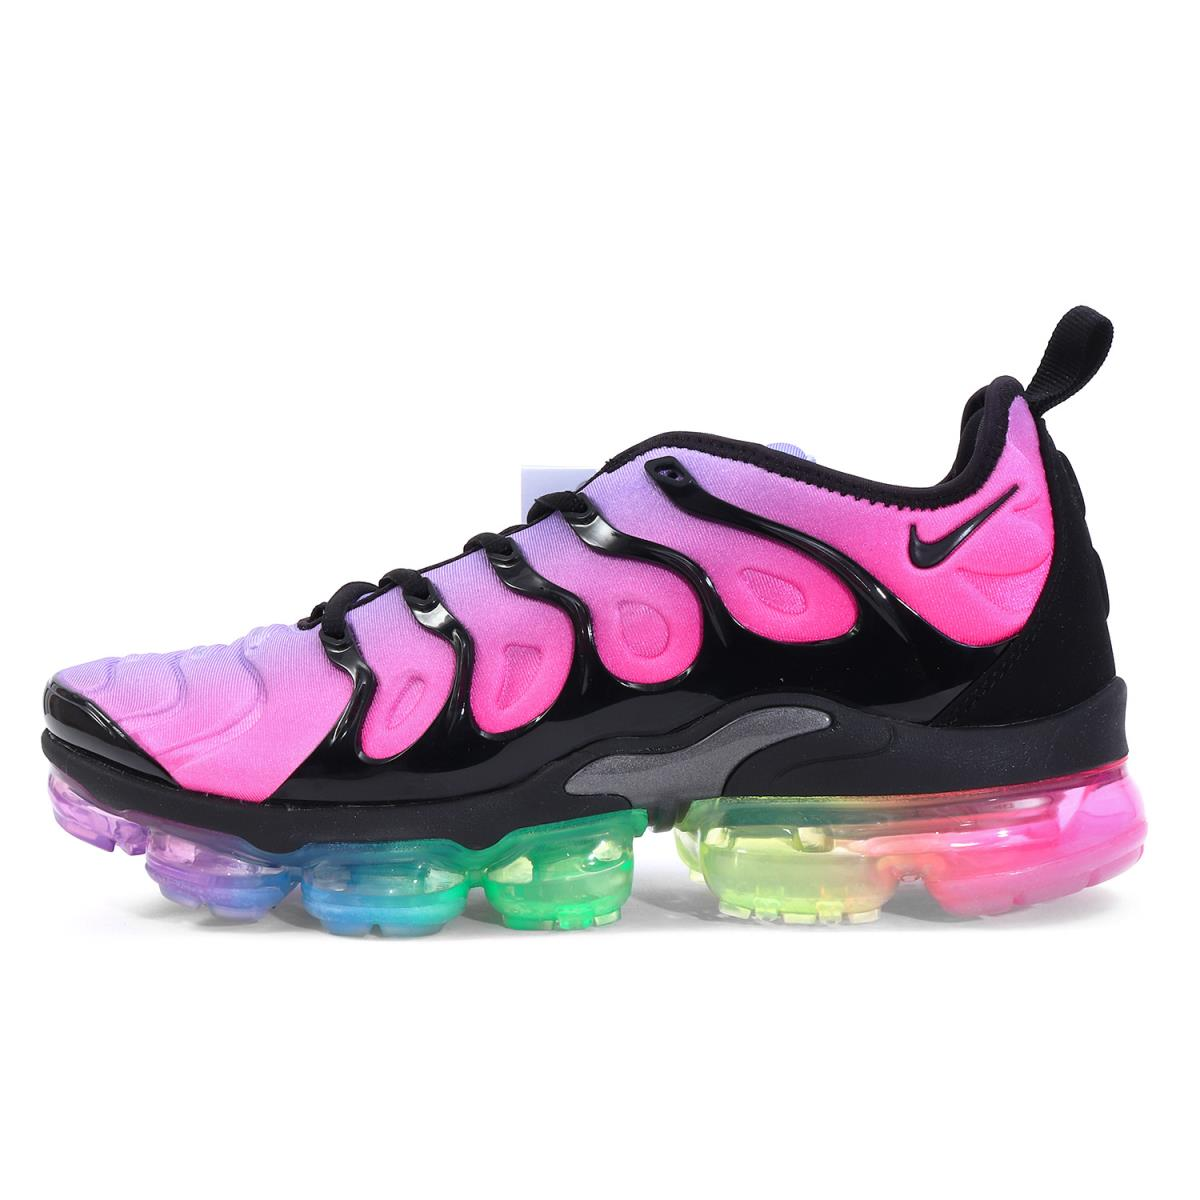 online store 773e8 00ff0 NIKE (Nike) AIR VAPORMAX PLUS BETRUE (AR4791-500) purple plus X black X  pink blast US10(28cm)